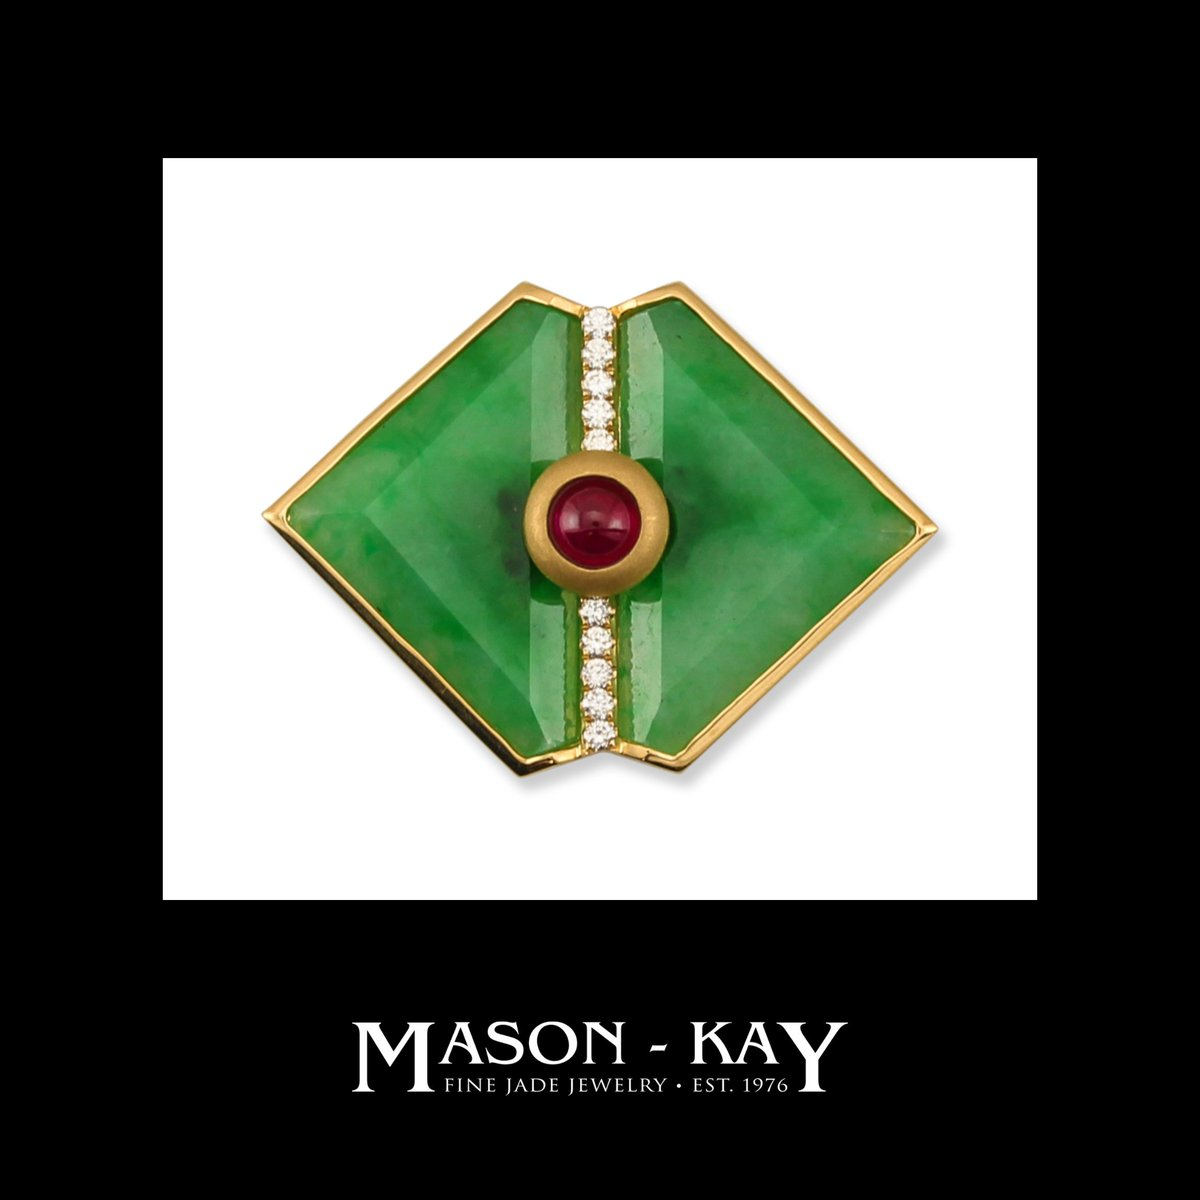 Mason Kay Jade Ar Twitter Two Mason Kay Jade Designs Featured In The Spring Issue Of Hong Kong Jewellery Magazine Our Beautiful Multi Stone Jade Sapphire Ruby Diamond Peacock Pin Pendant More